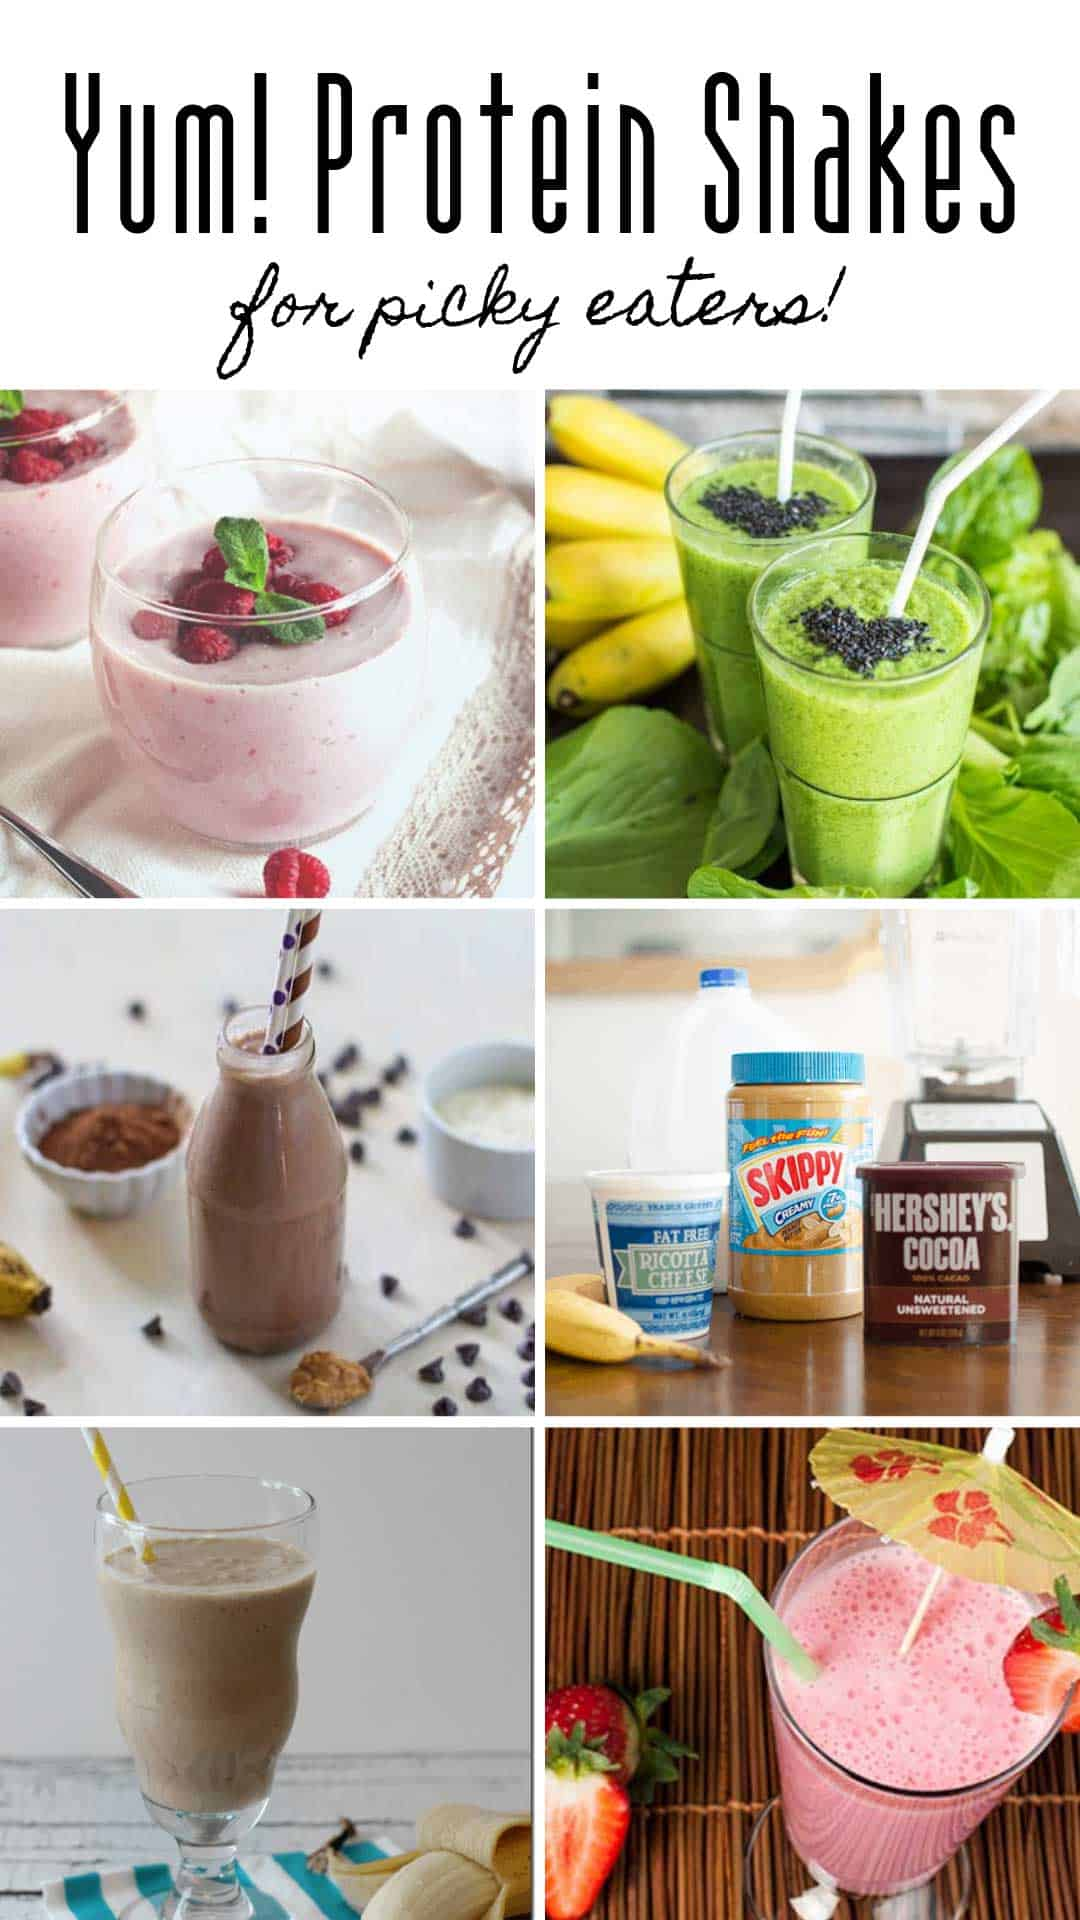 These protein shakes for picky eaters are just what you need for kids who refuse to eat meat and veggies!